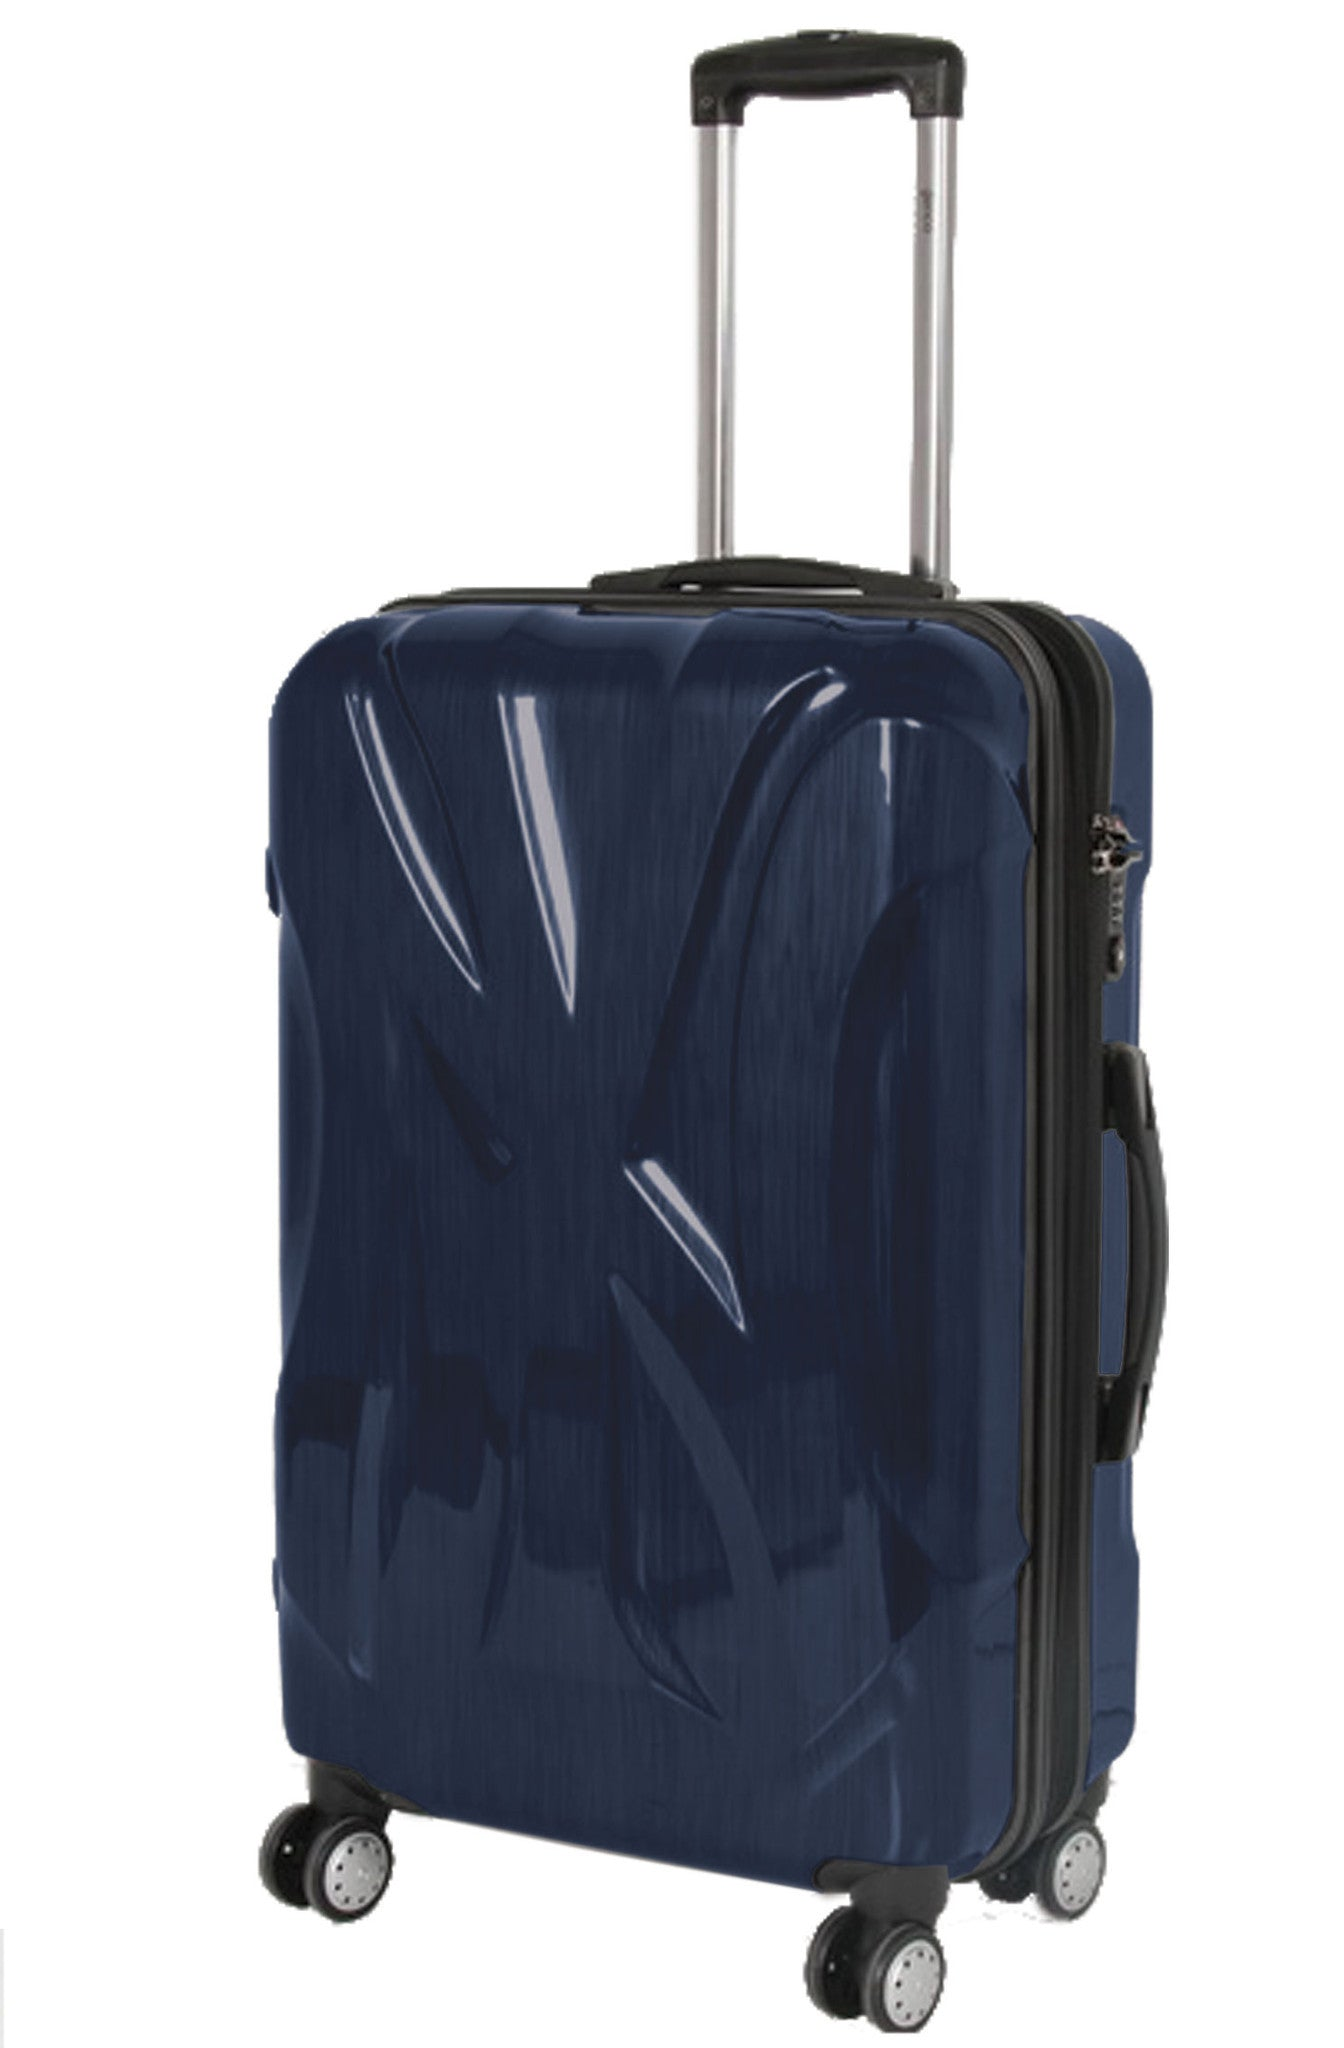 "New York Yankees, 19"" Premium Molded Luggage by Kaybull #NYY-19PCF - OBM Distribution, Inc."